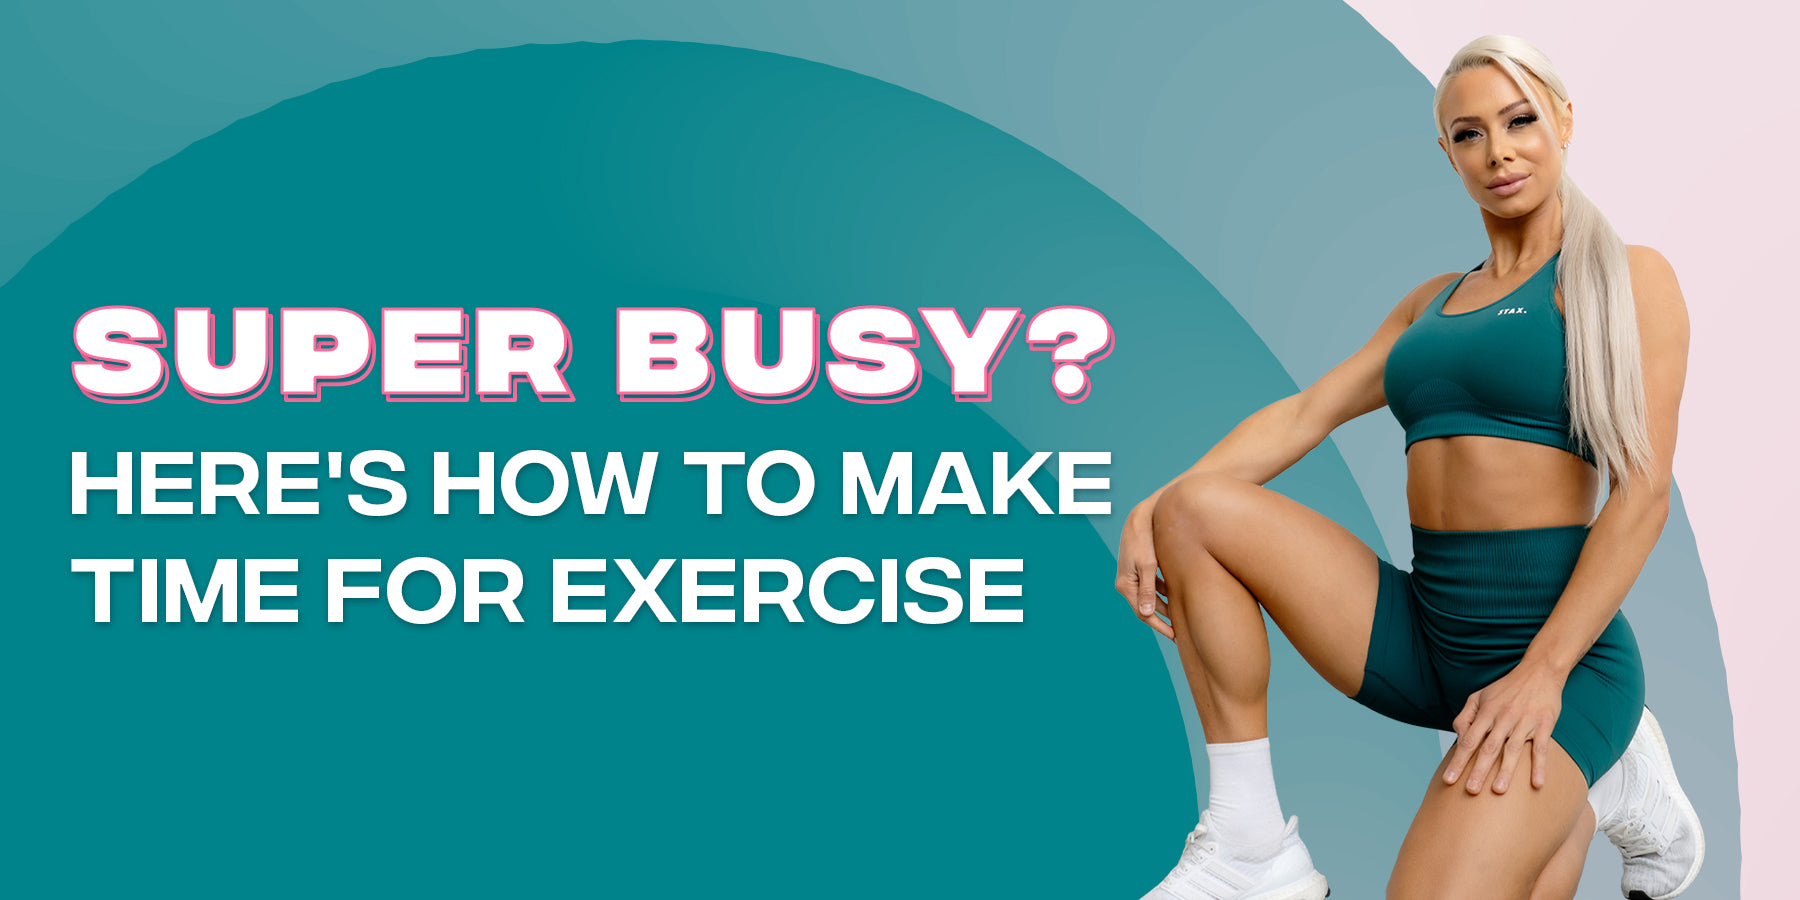 Super Busy? Here's How To Make Time For Exercise?